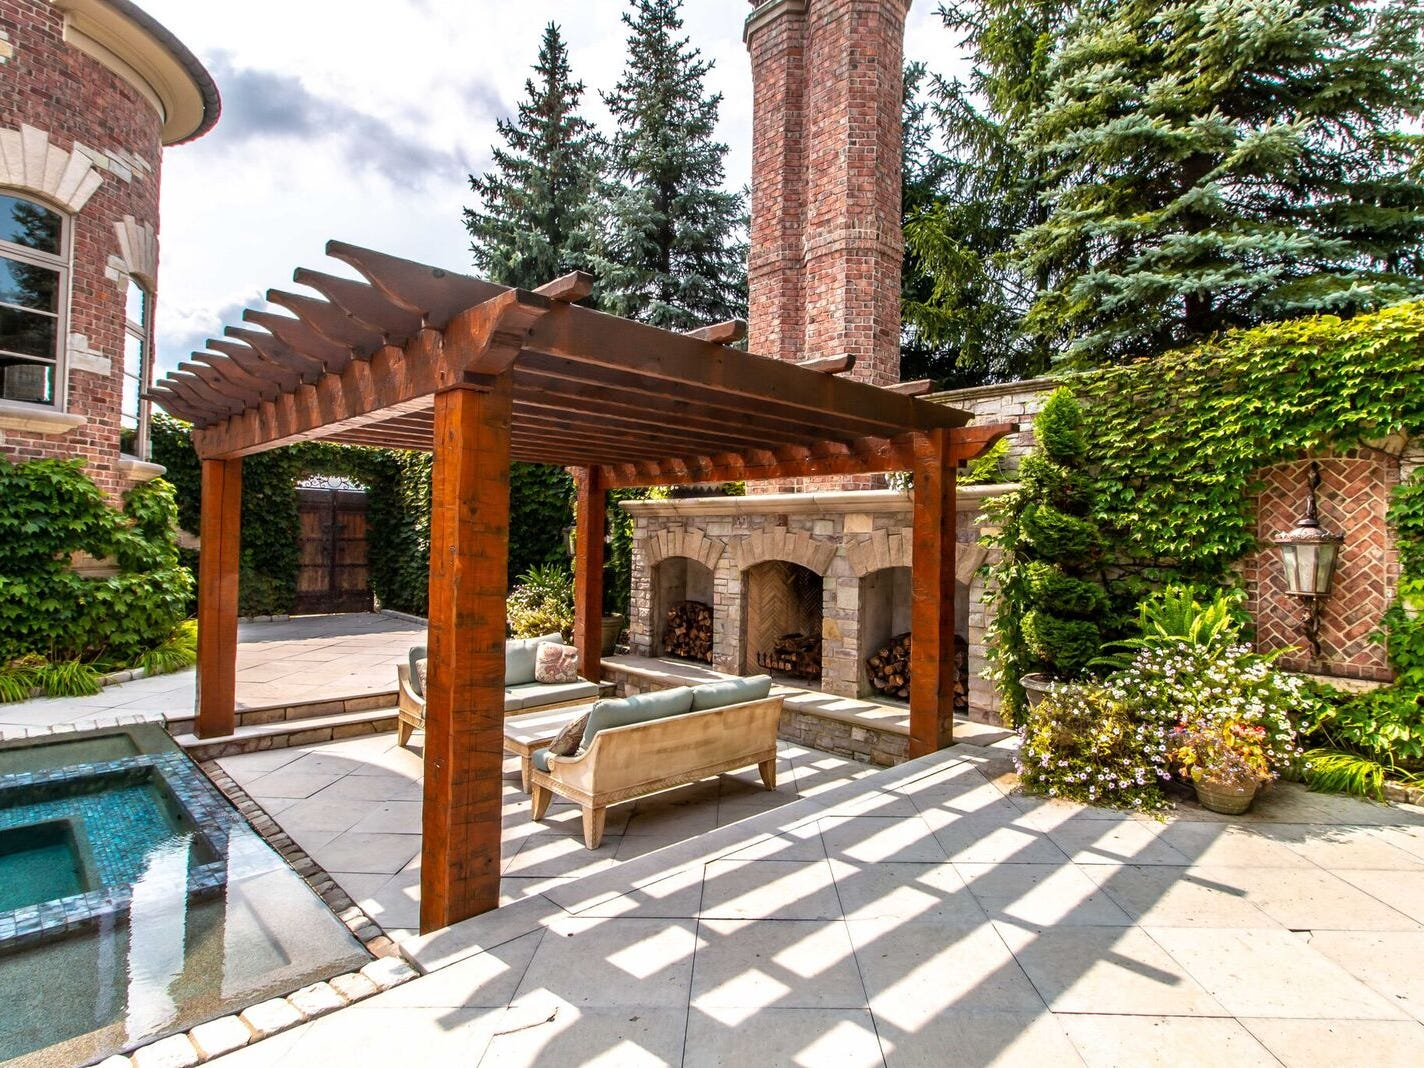 An outdoor seating area with three fireplaces, designed to keep the space usable in the fall and winter.